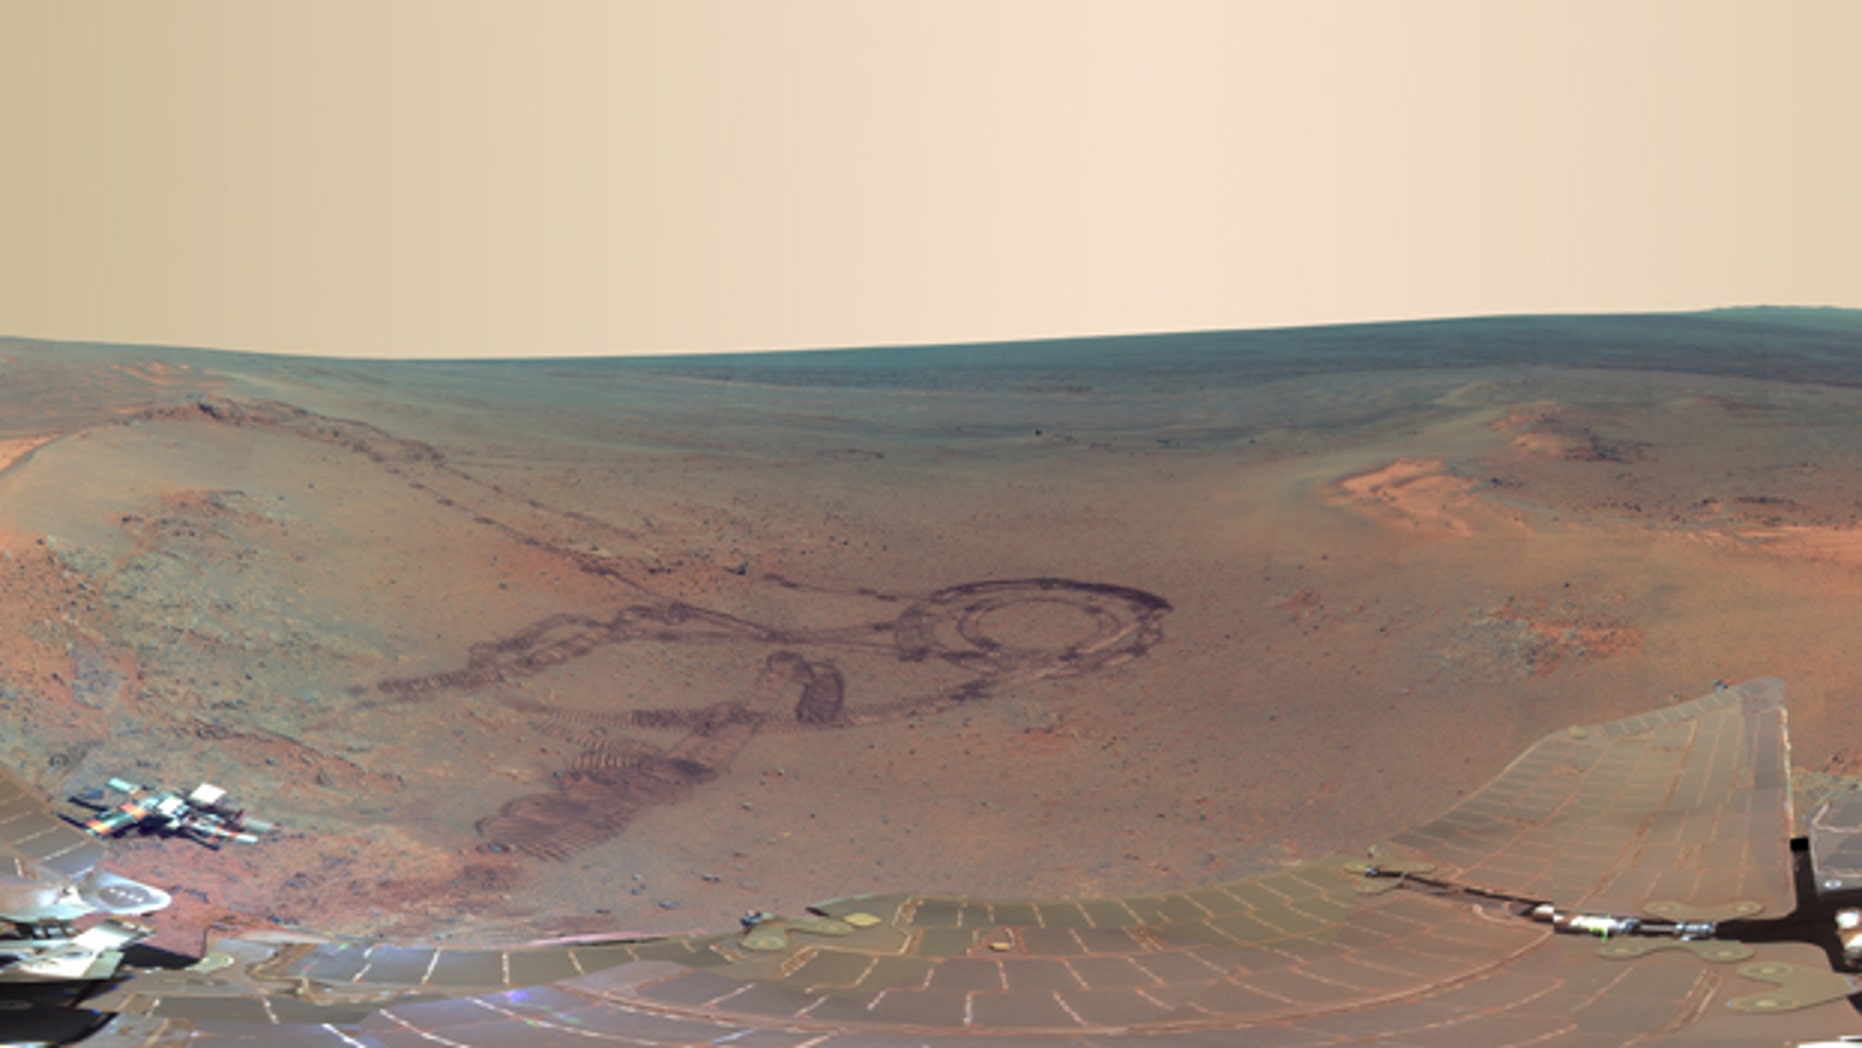 July 5, 2012: From fresh rover tracks to an impact crater blasted billions of years ago, a newly completed view from the panoramic camera (Pancam) on NASA's Mars Exploration Rover Opportunity shows the ruddy terrain around the outcrop where the long-lived explorer spent its most recent Martian winter.